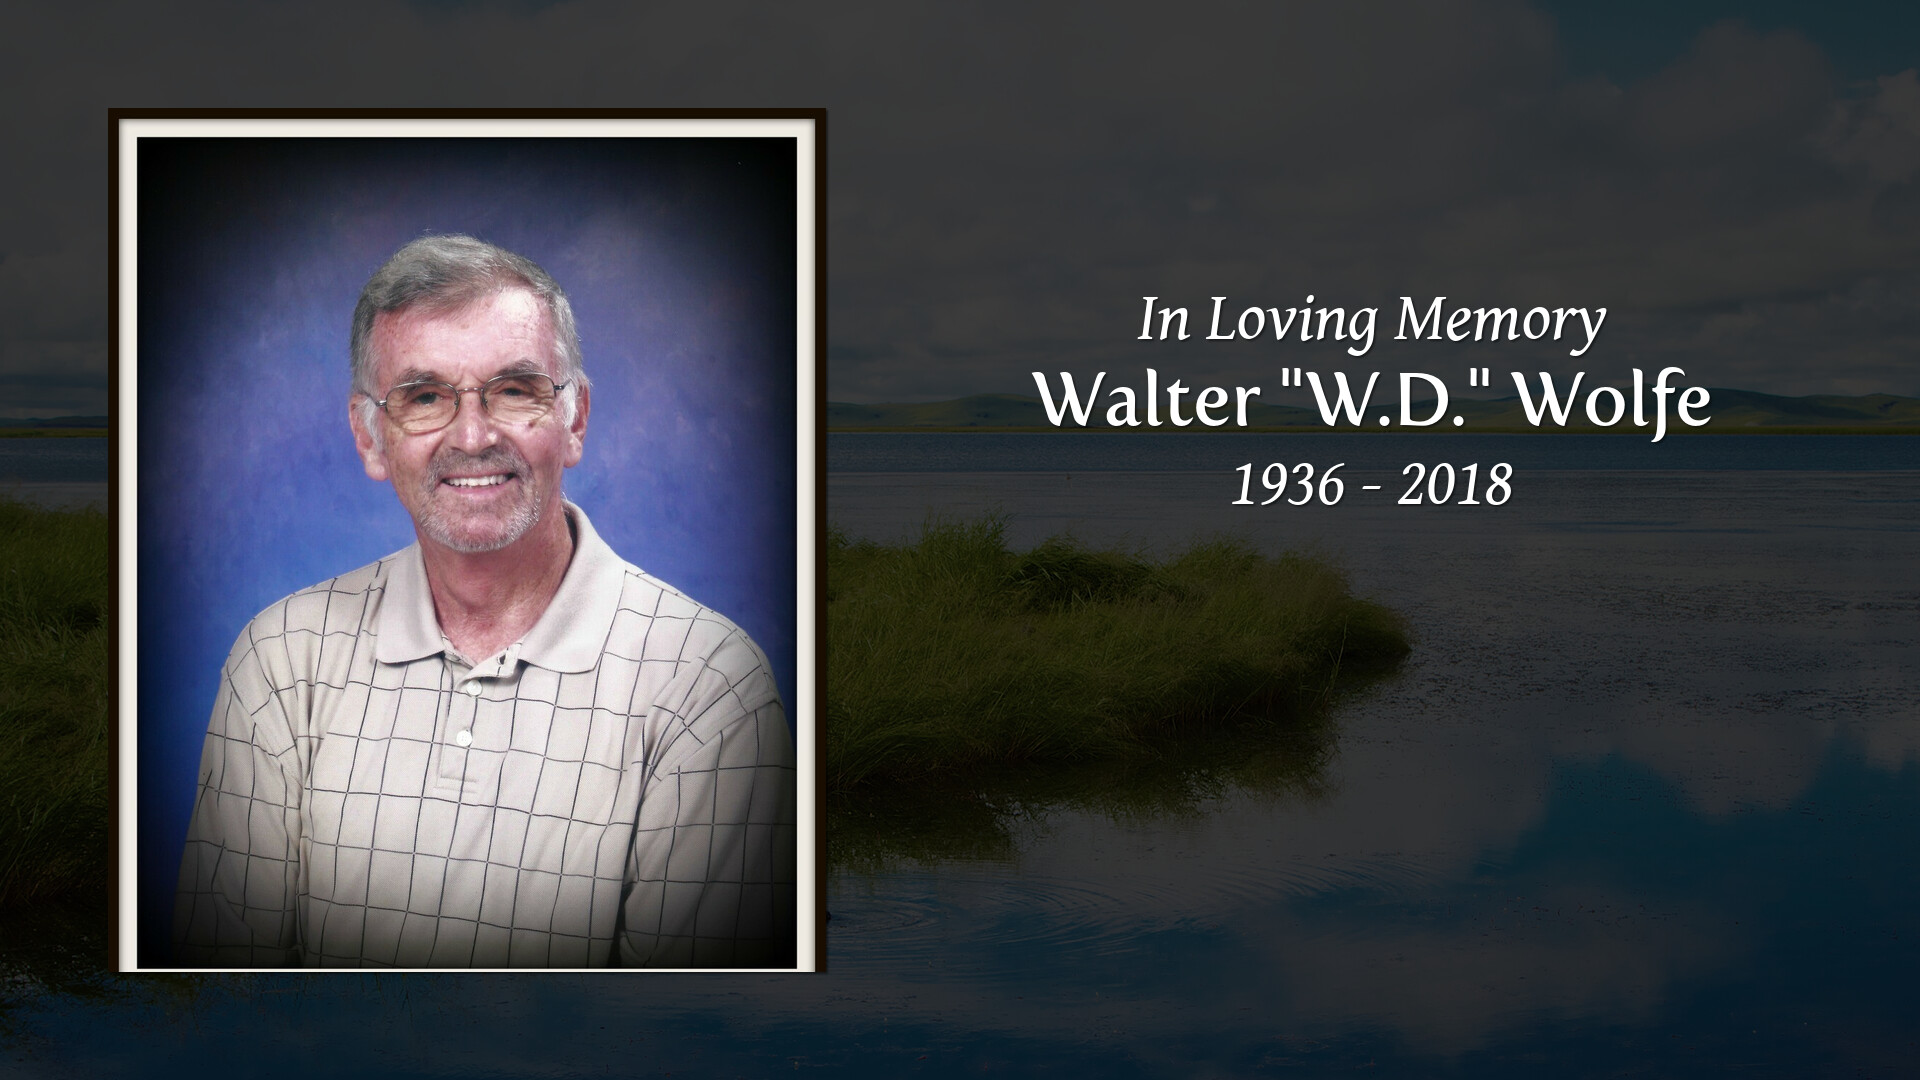 Obituary for Walter